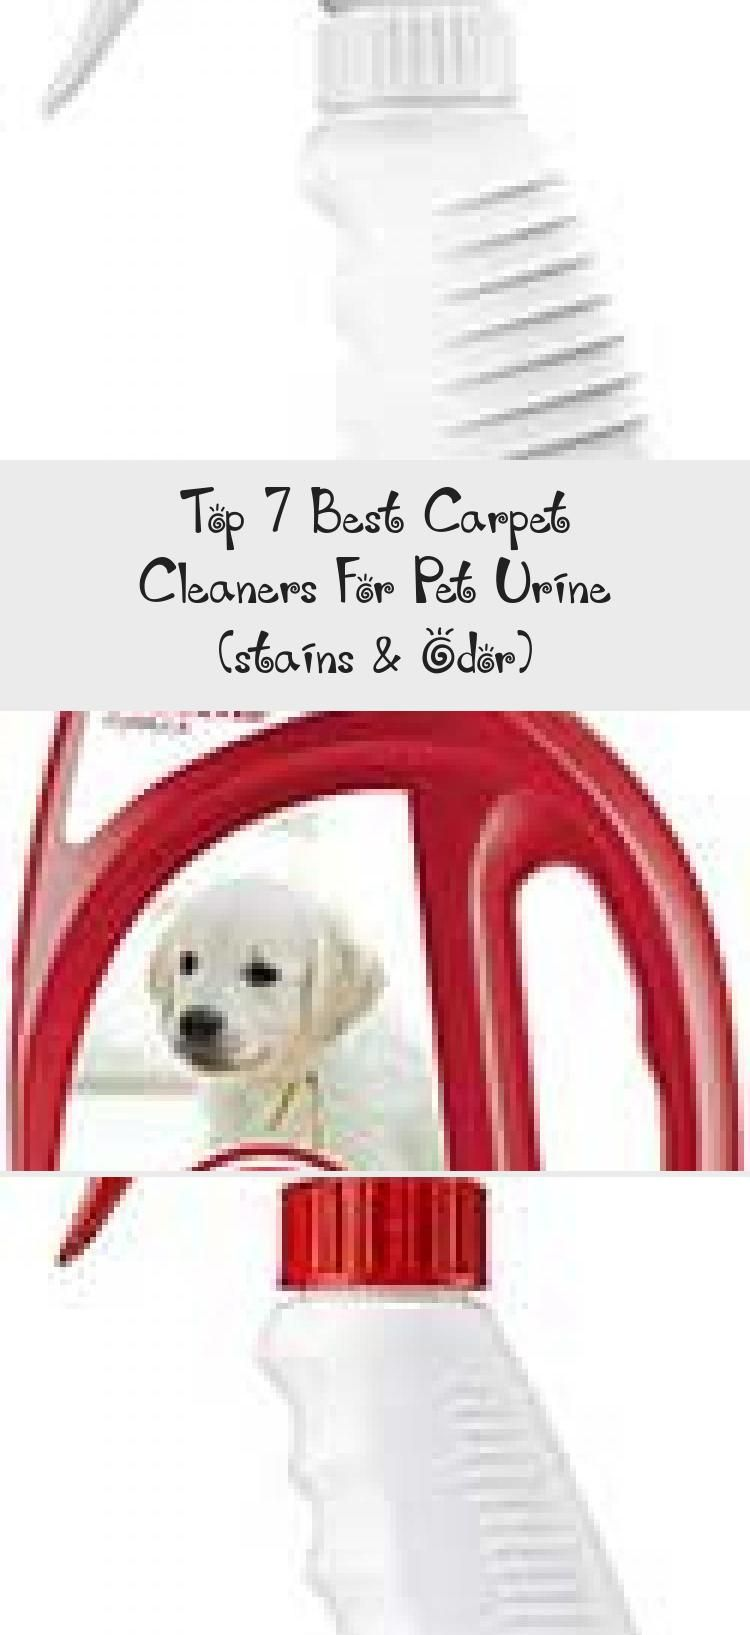 Top 7 Best Carpet Cleaners For Pet Urine Stains Odor Dogstains Petcleaner Dogbehavior Carpetcleanerprodu In 2020 Carpet Cleaner Solution Pet Urine Pet Cleaner